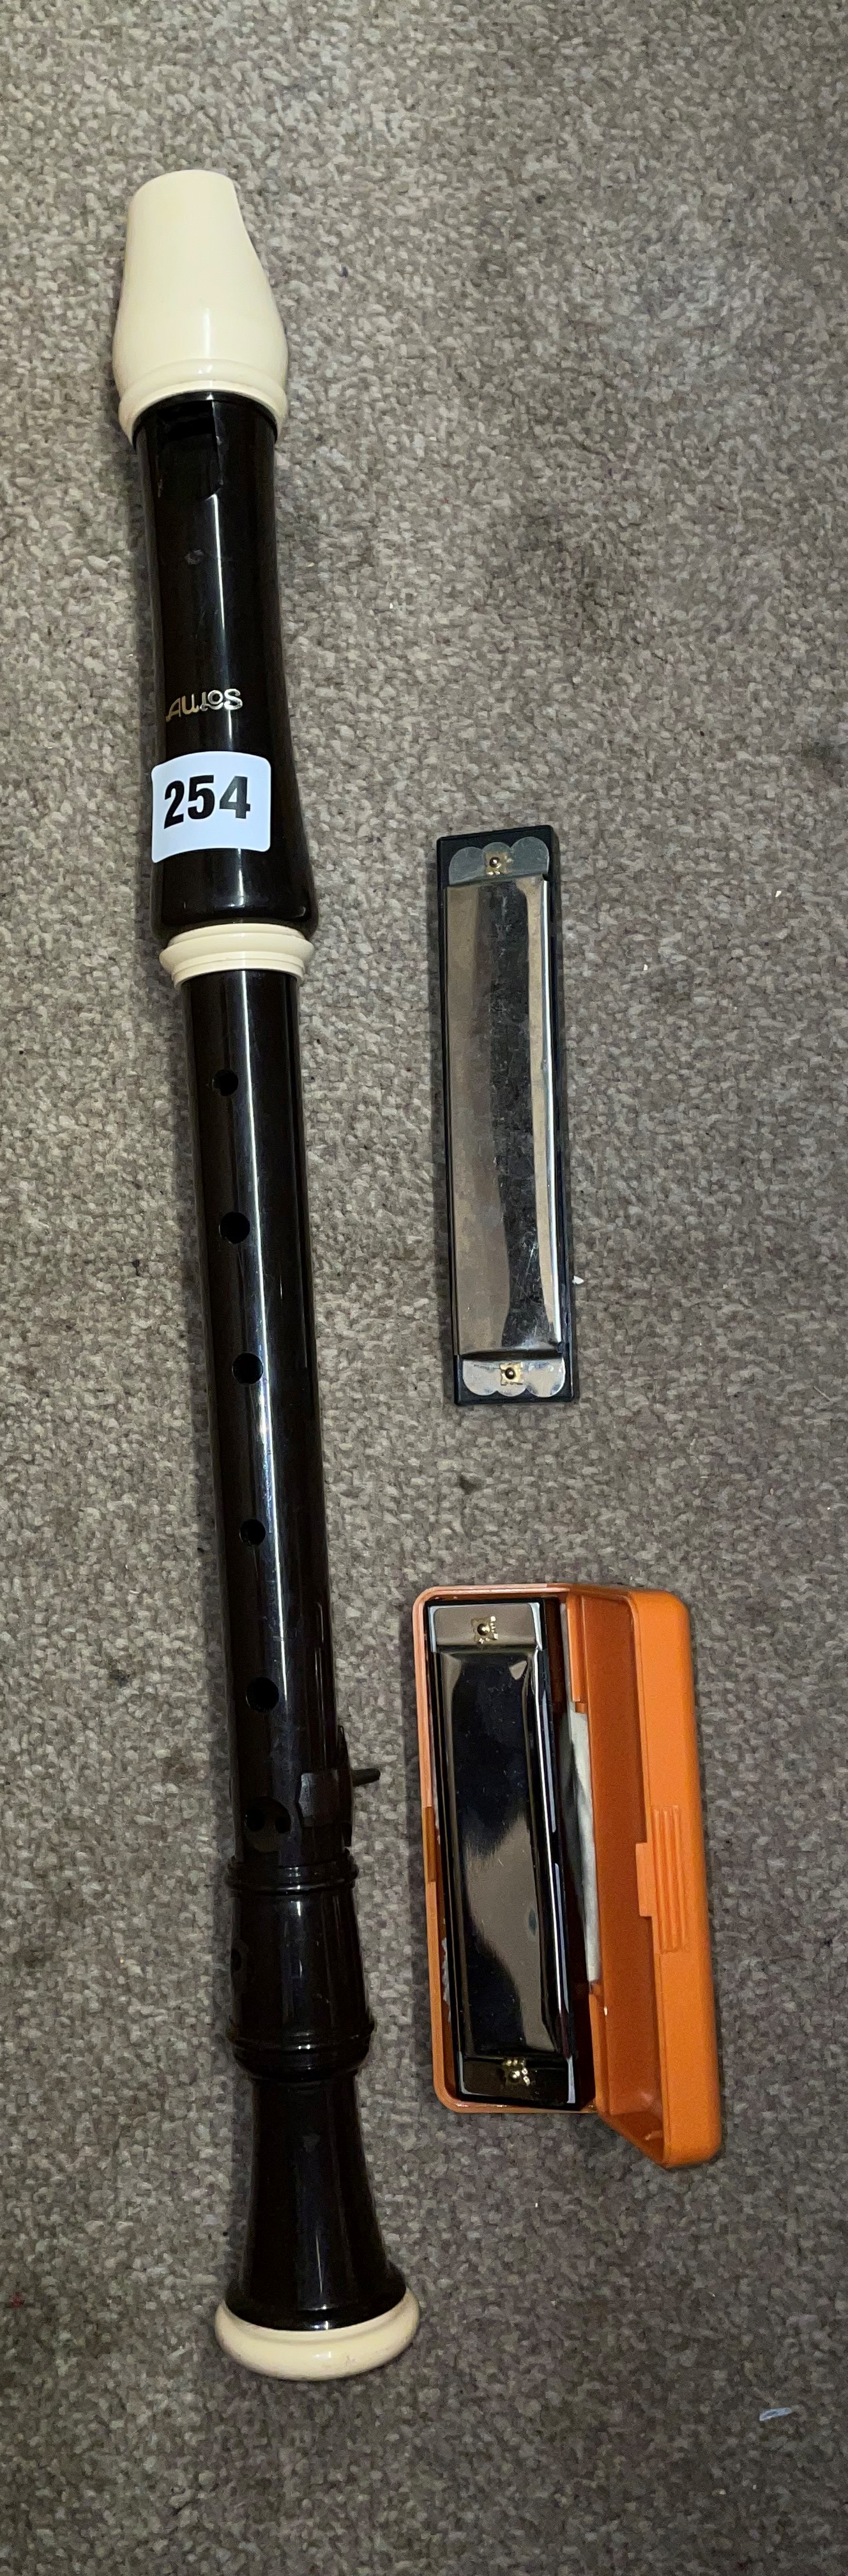 AULUS RECORDER AND TWO HARMONICAS